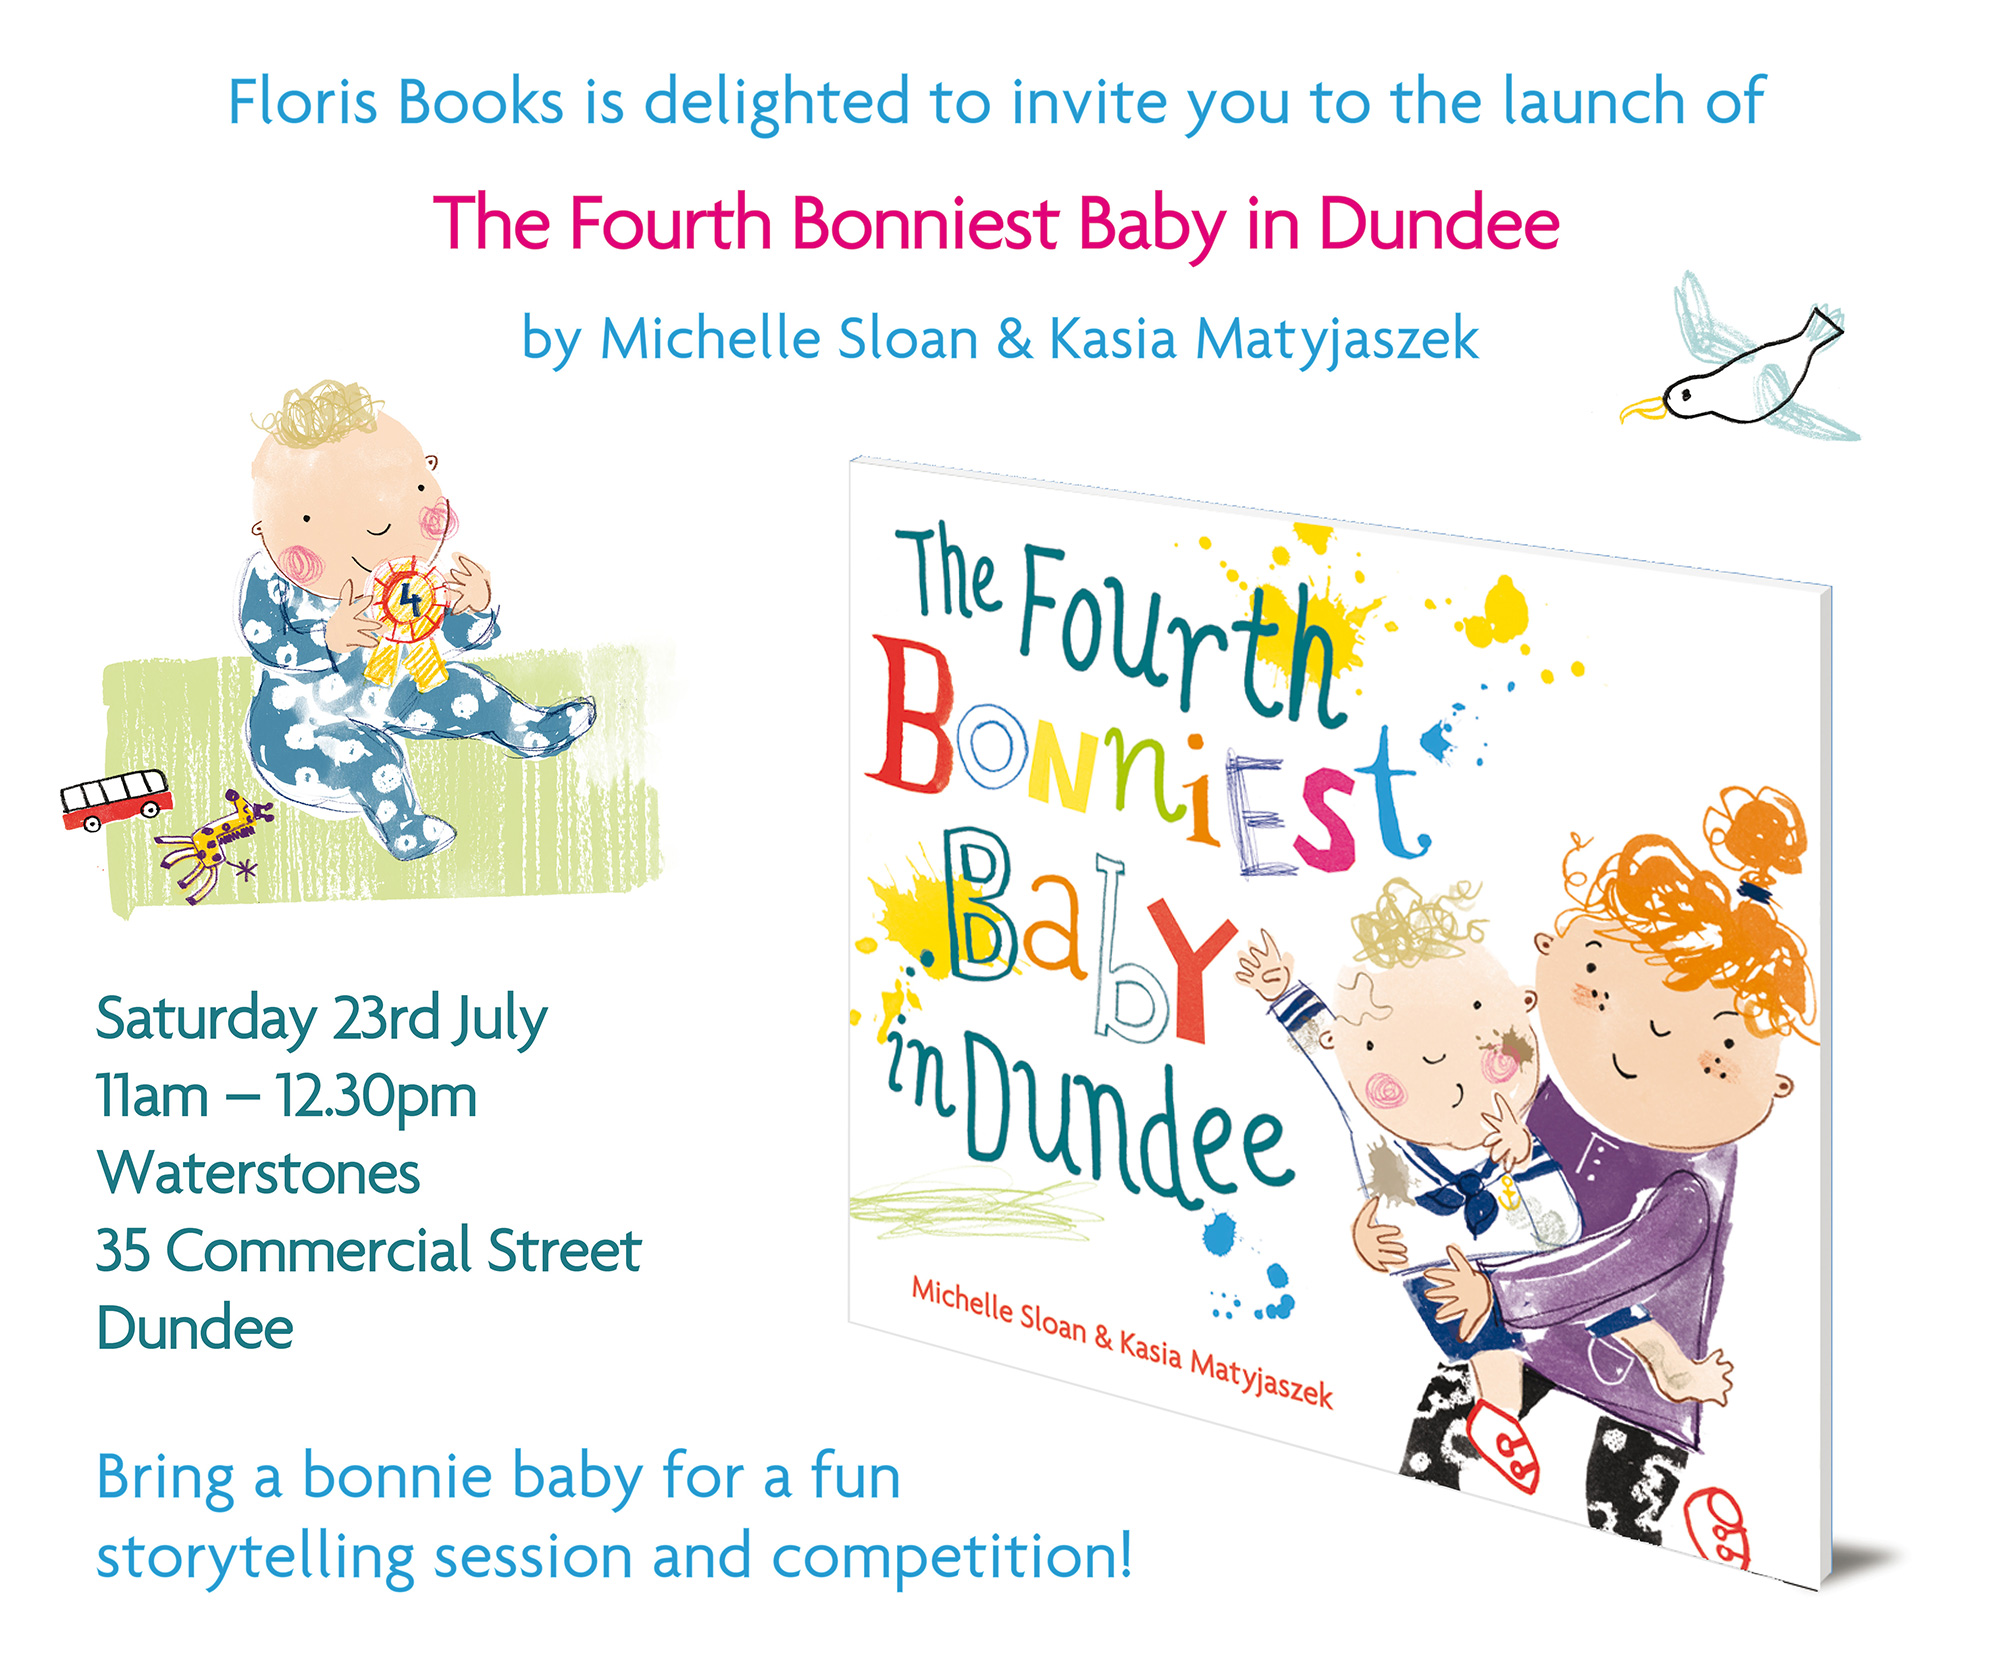 The Fourth Bonniest Baby in Dundee - Book Launch